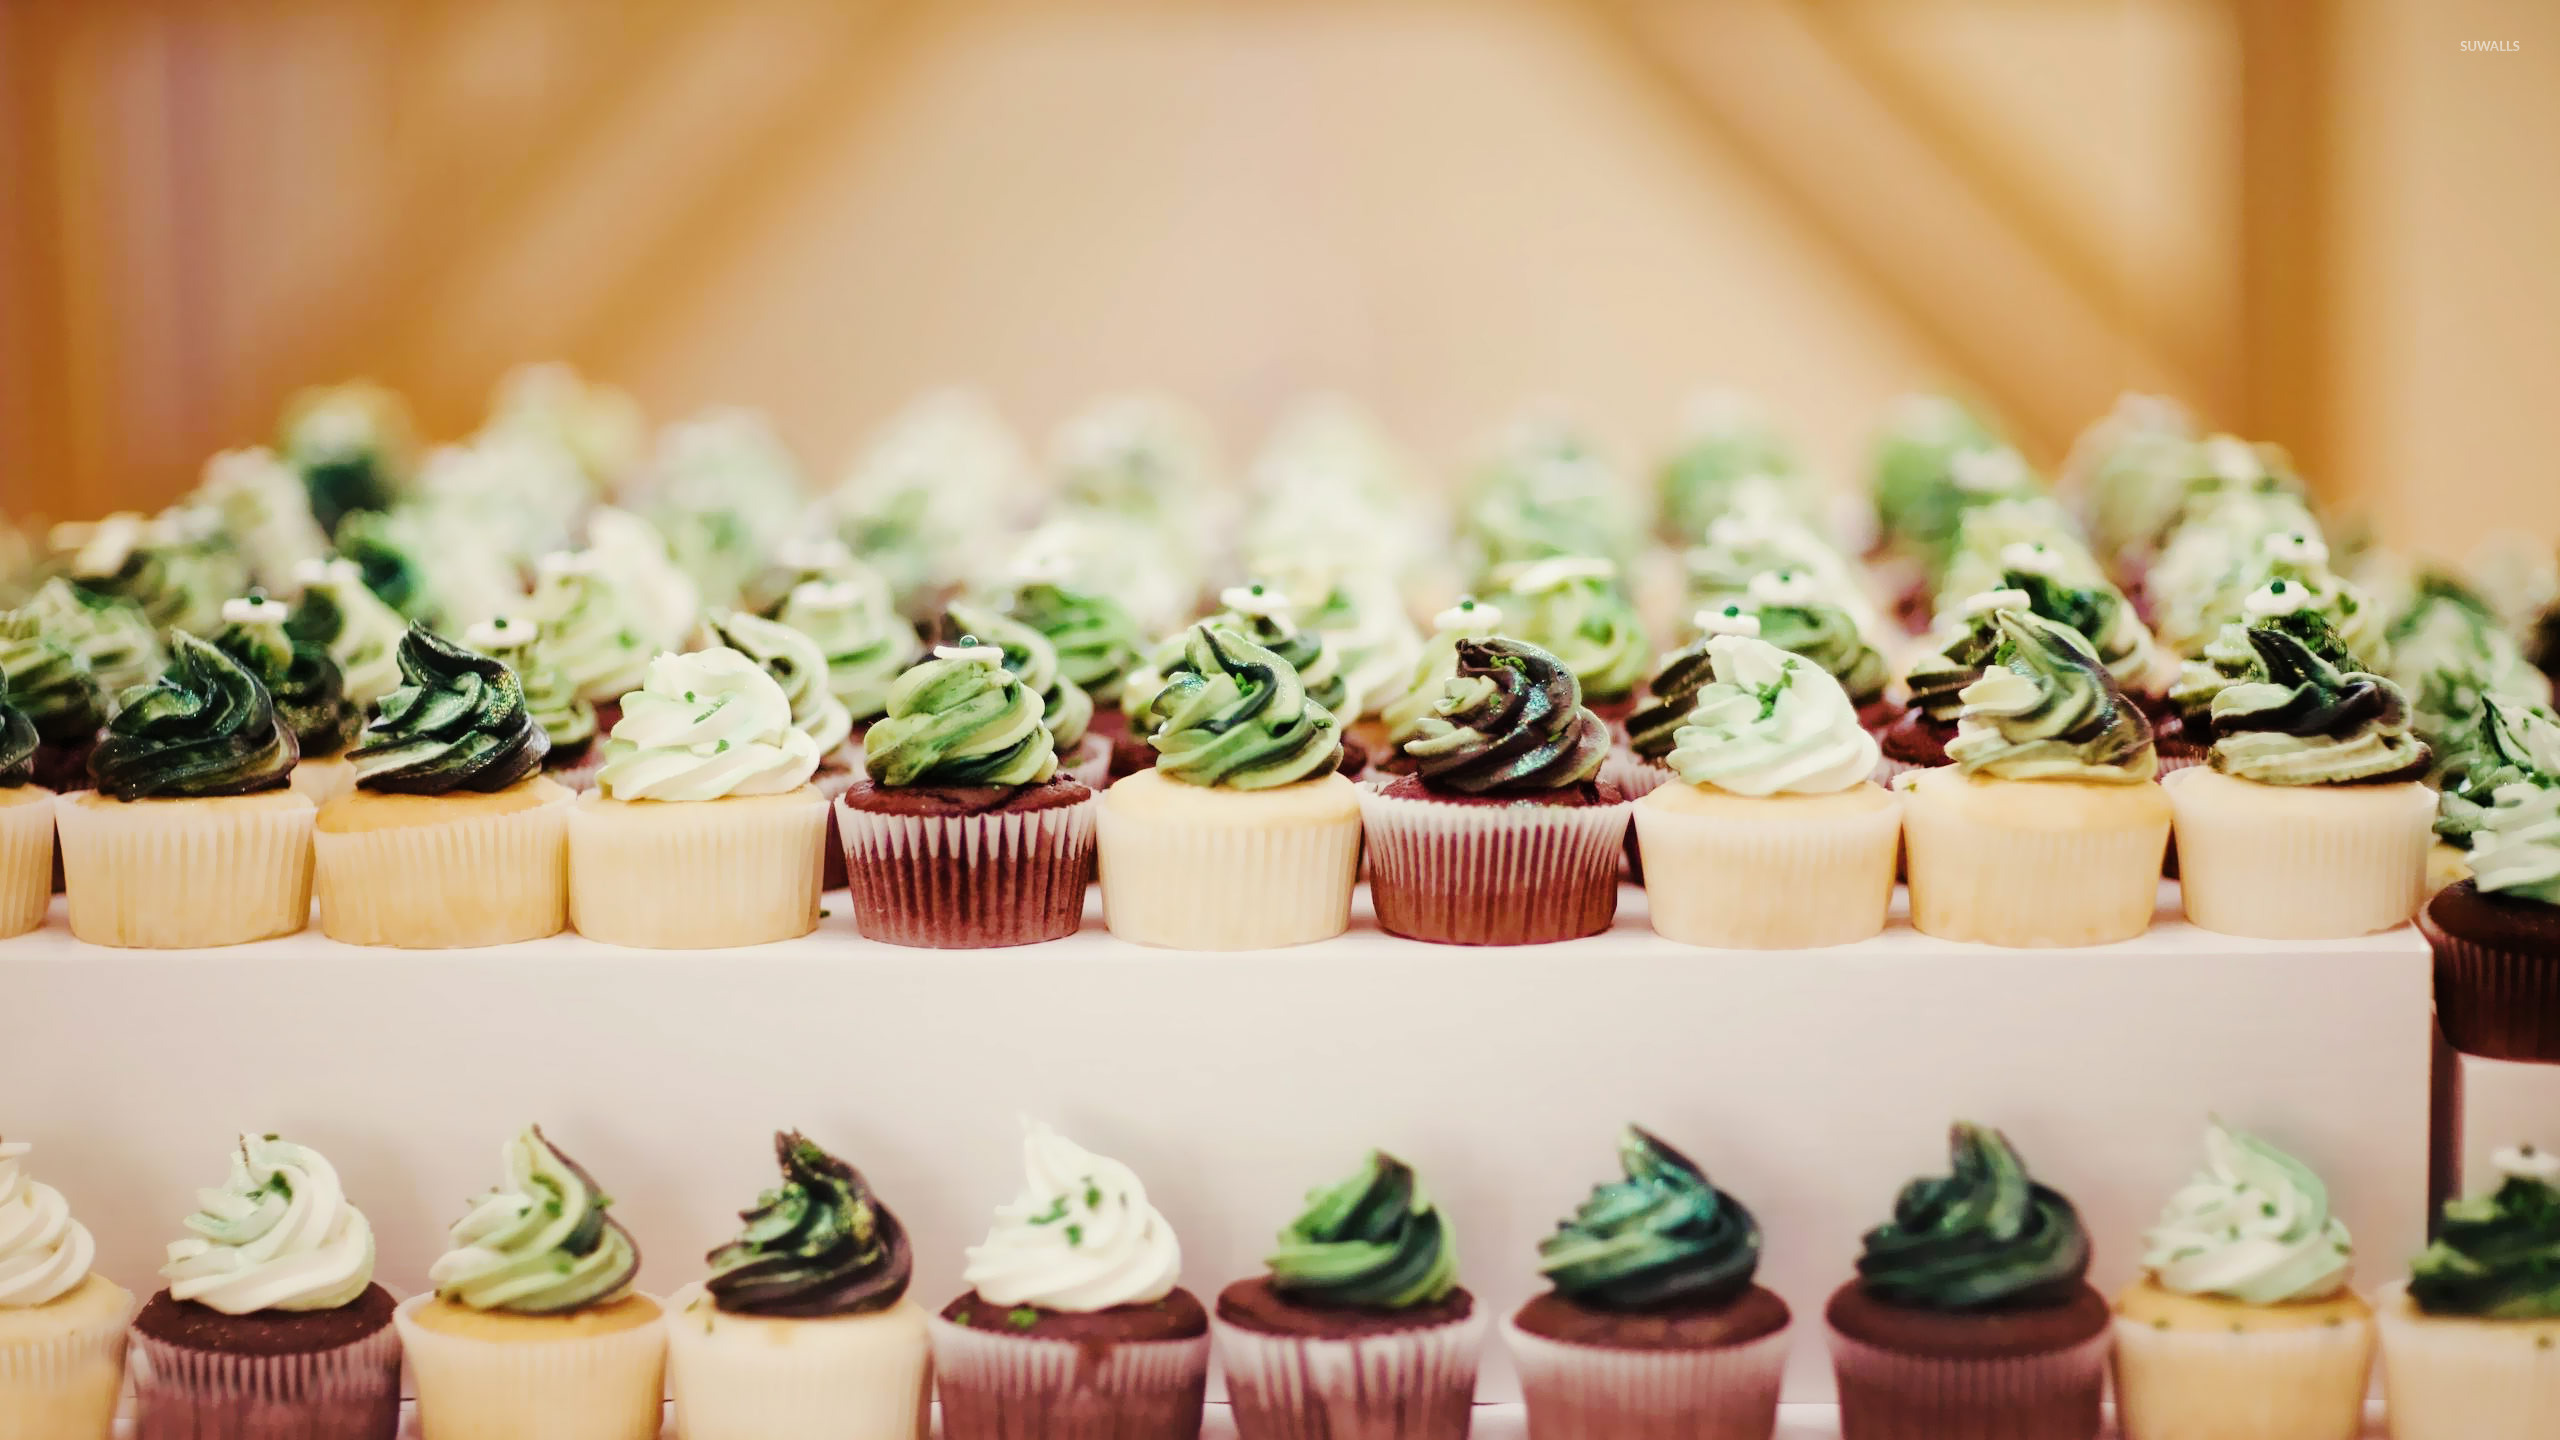 Colorful cupcakes on the pancakes wallpaper Photography